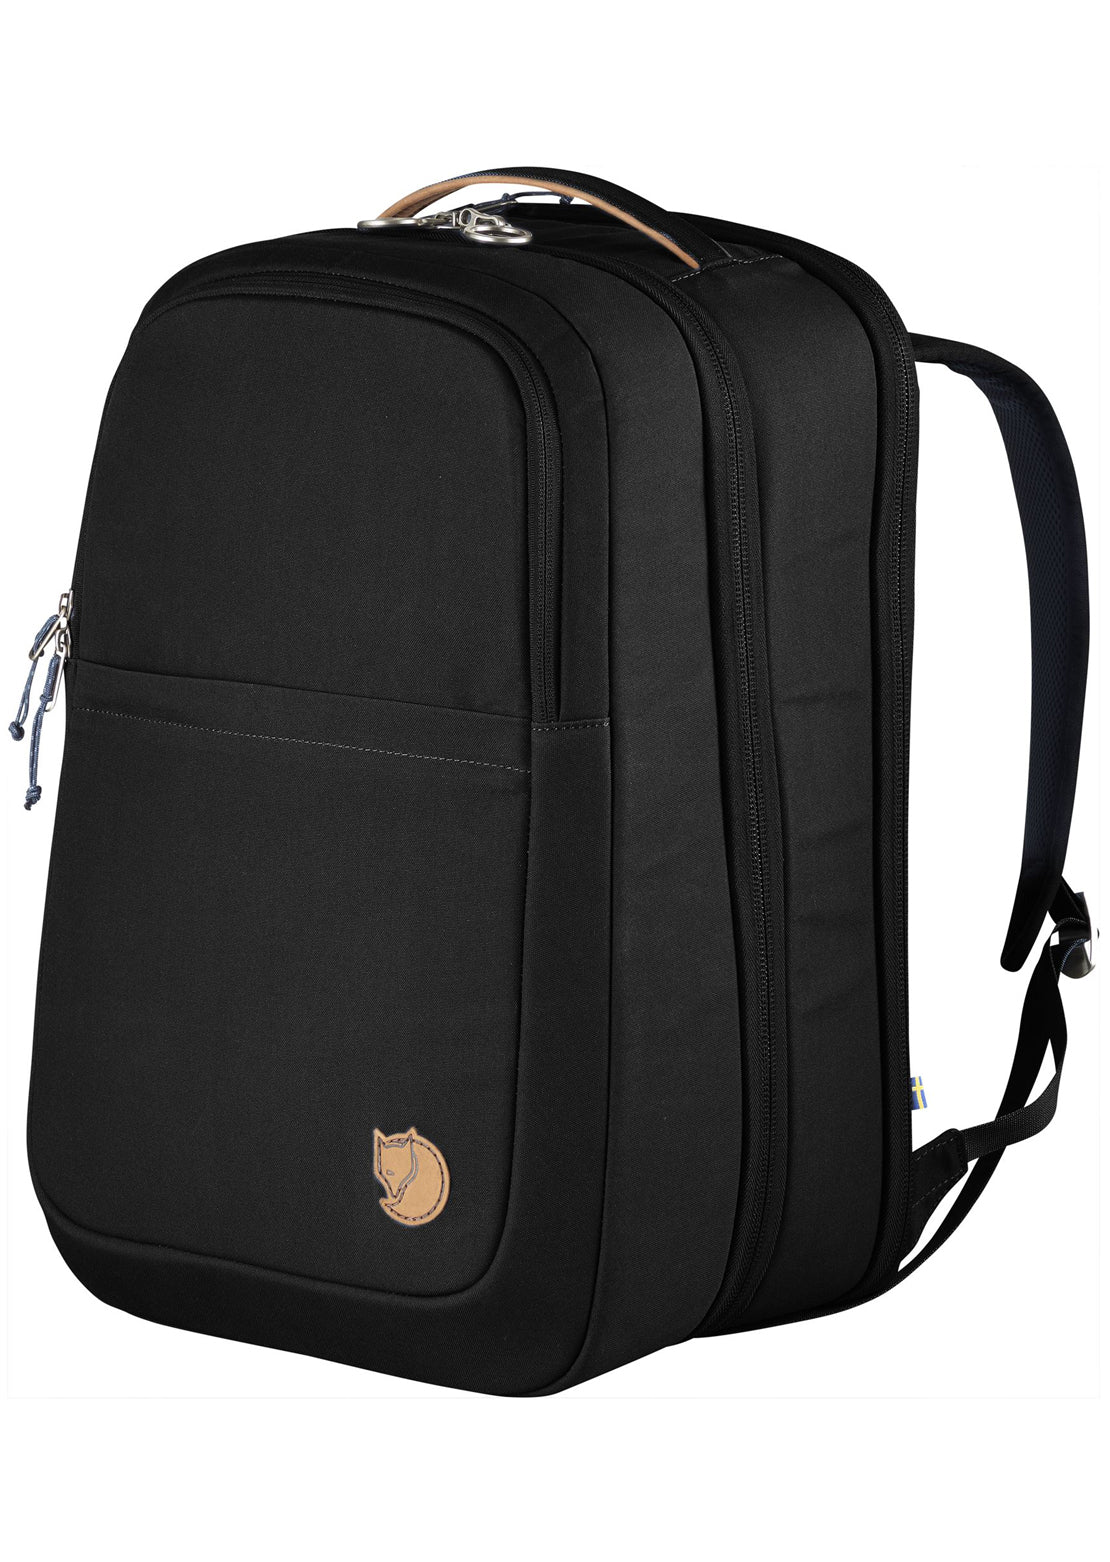 Fjallraven Travel Pack Black